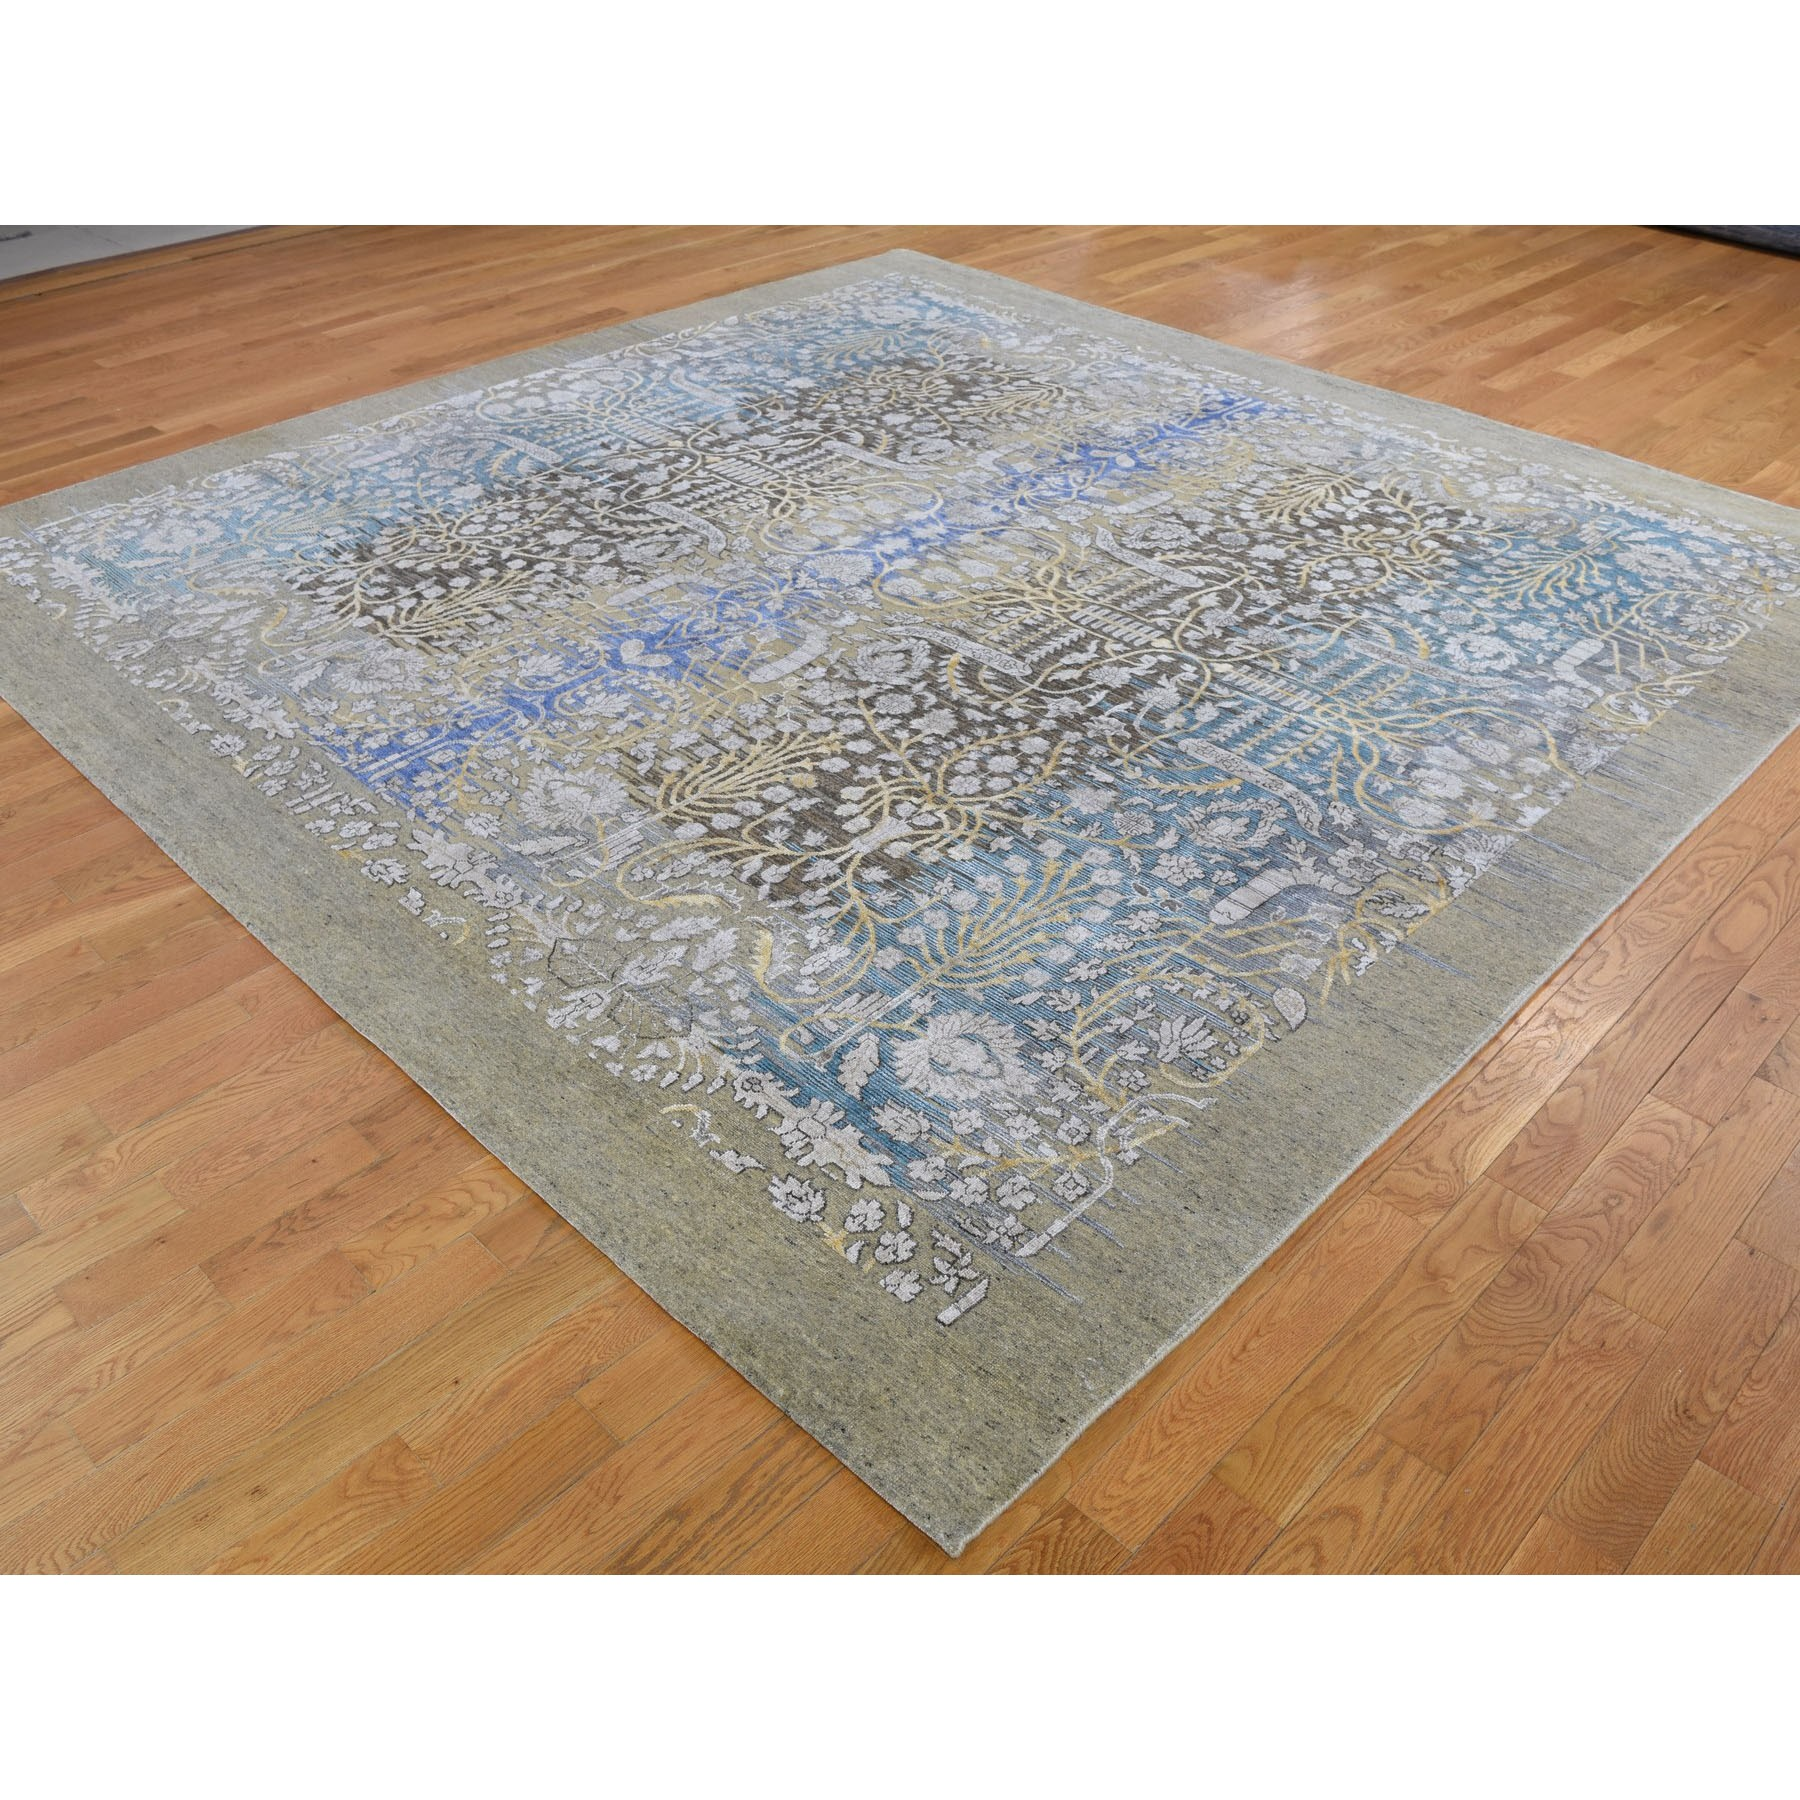 10'x10' Square Silk with Textured Wool Transitional Sarouk Hand Knotted Oriental Rug